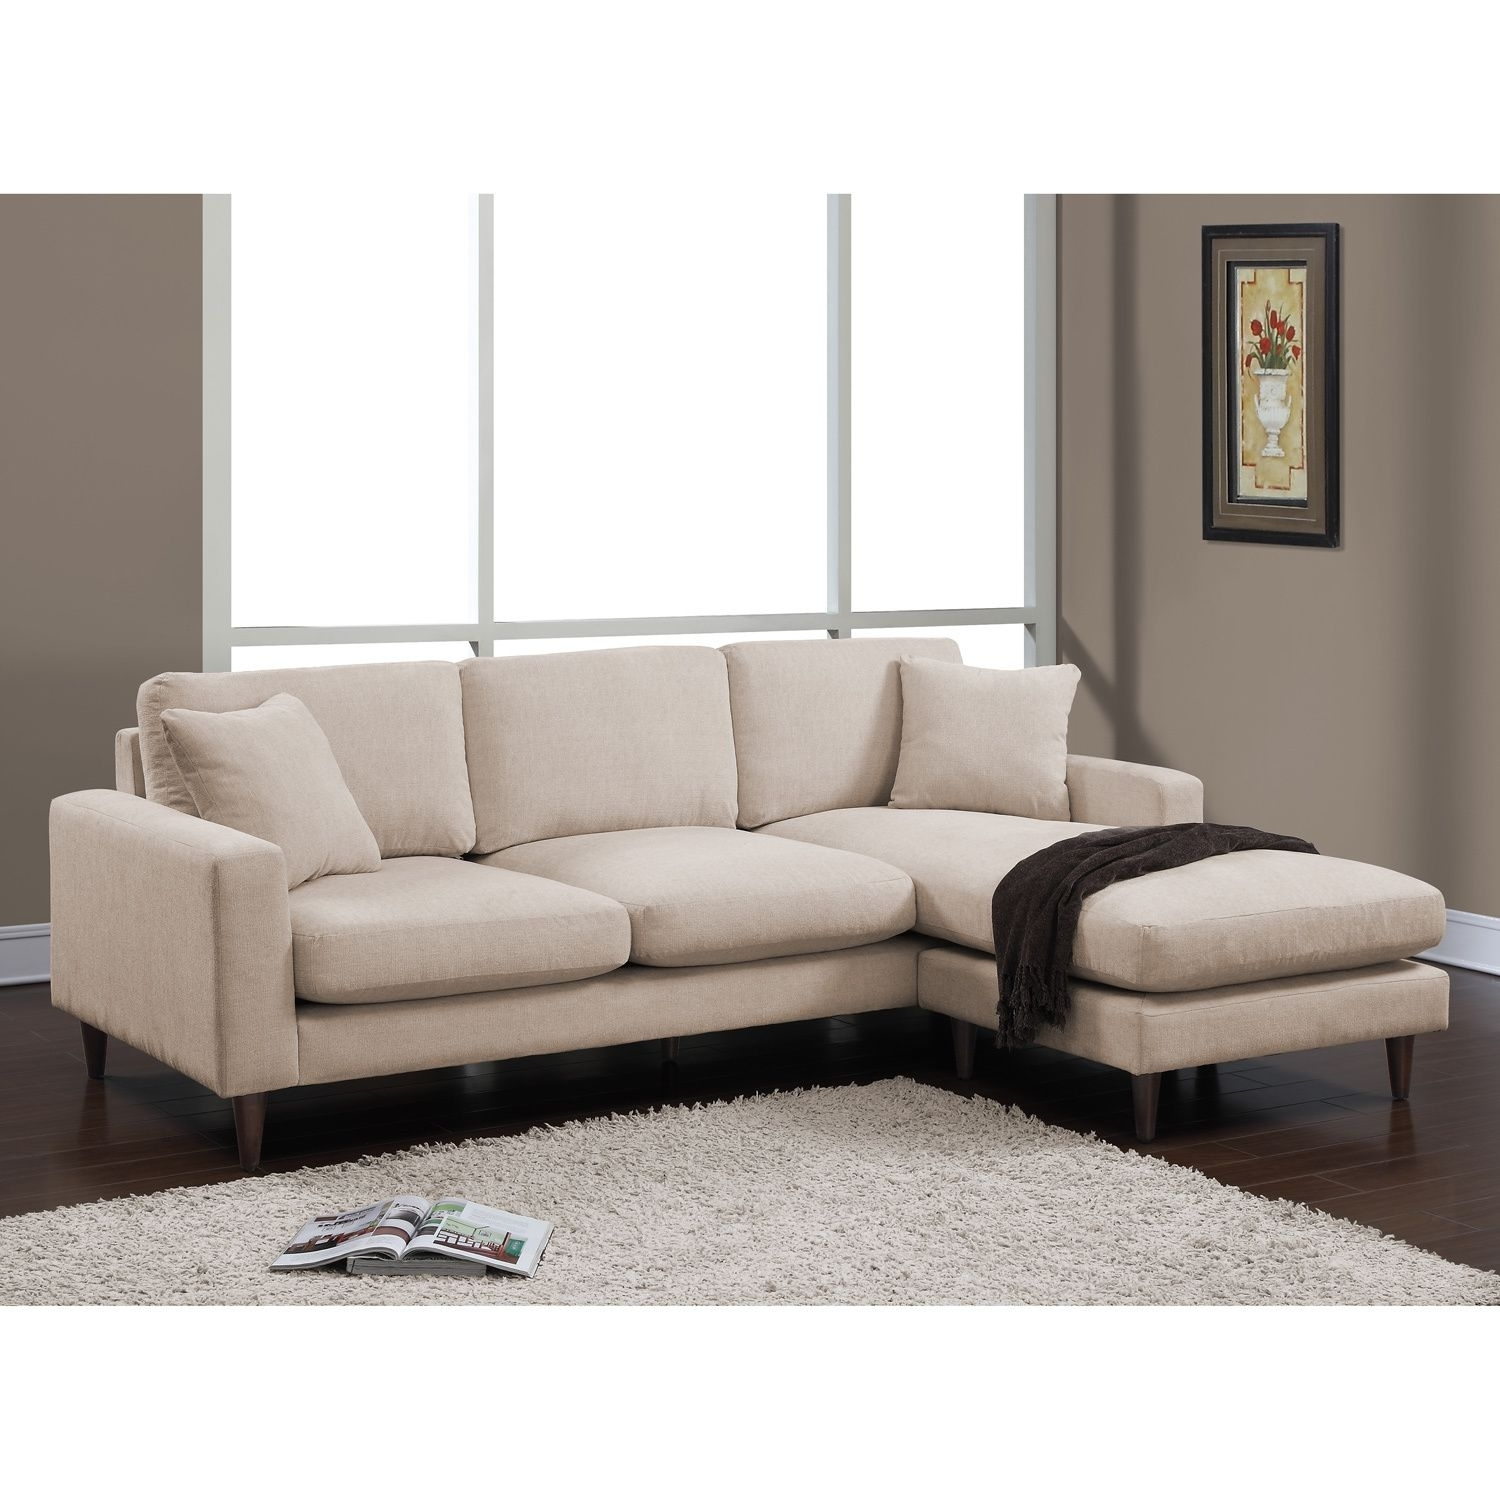 sectional sofas ontario canada la z boy briggs recliner sofa 10 inspirations kingston ideas